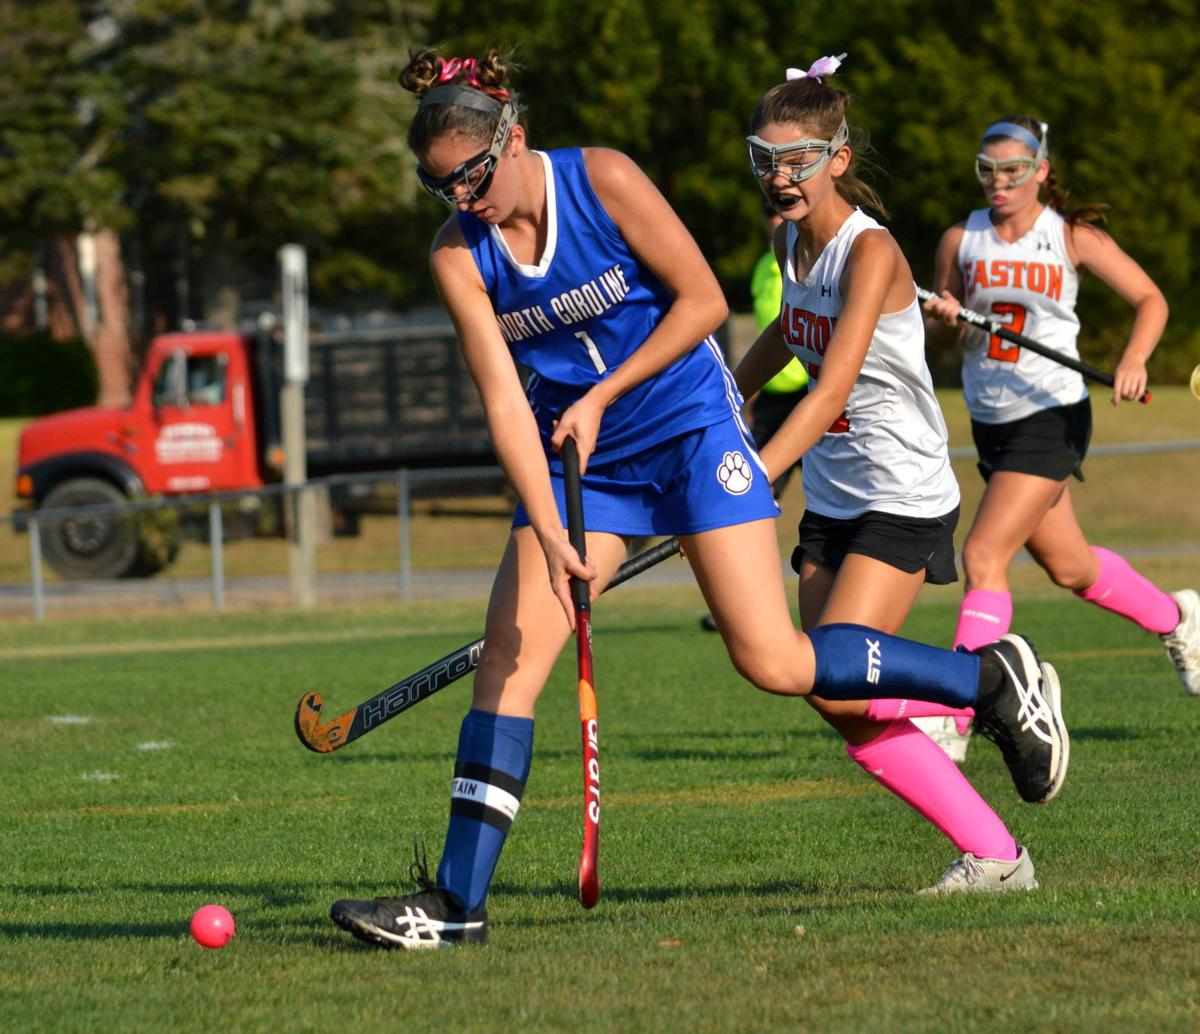 High School Field Hockey: North Caroline at Easton